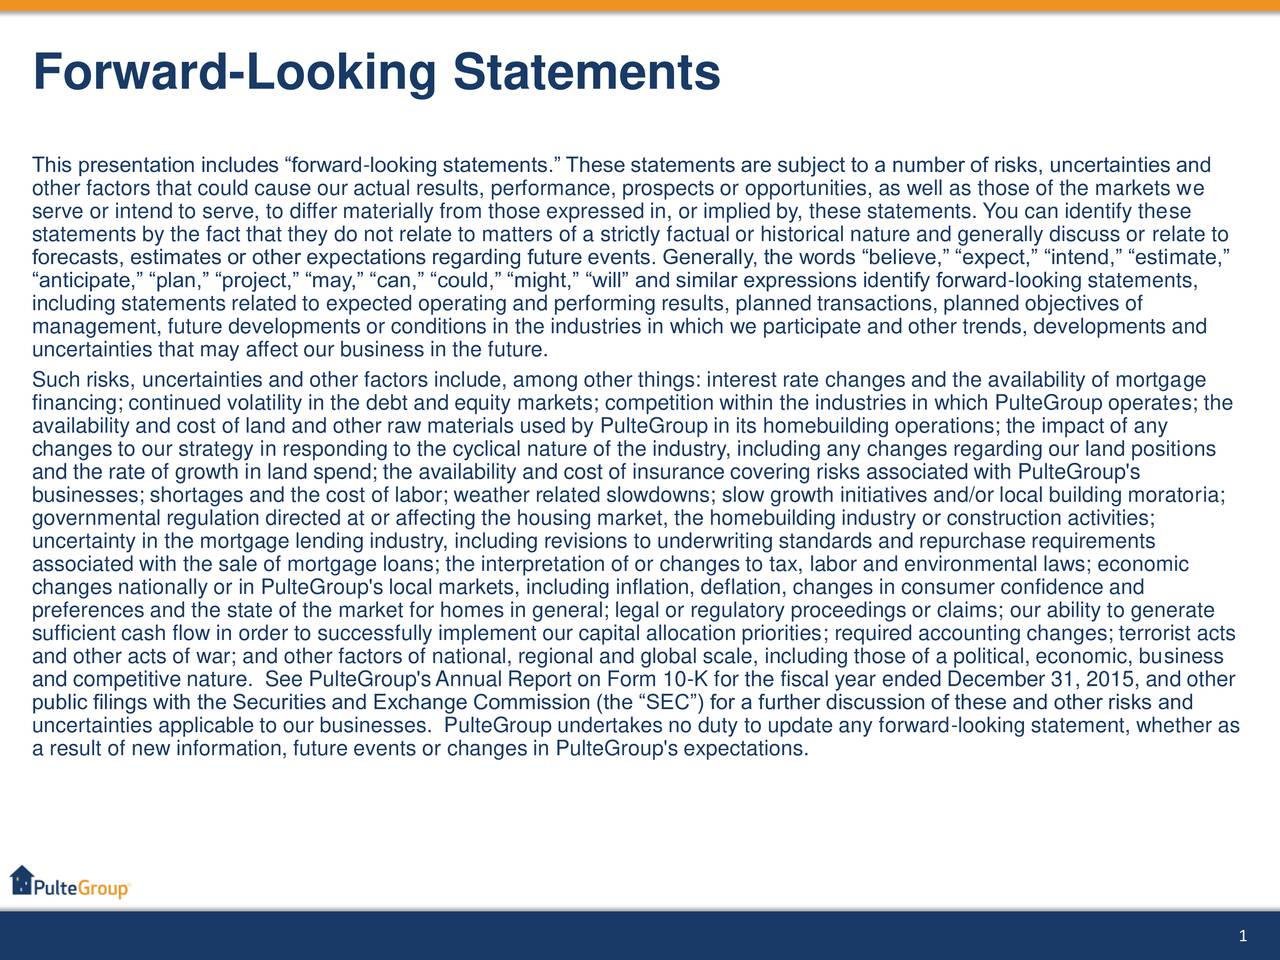 This presentation includes forward-looking statements. These statements are subject to a number of risks, uncertainties and other factors that could cause our actual results, performance, prospects or opportunities, as well as those of the markets we serve or intend to serve, to differ materially from those expressed in, or implied by, these statements. You can identify these statements by the fact that they do not relate to matters of a strictly factual or historical nature and generally discuss or relate to forecasts, estimates or other expectations regarding future events. Generally, the words believe, expect, intend, estimate, anticipate, plan, project, may, can, could, might, will and similar expressions identify forward-looking statements, including statements related to expected operating and performing results, planned transactions, planned objectives of management, future developments or conditions in the industries in which we participate and other trends, developments and uncertainties that may affect our business in the future. Such risks, uncertainties and other factors include, among other things: interest rate changes and the availability of mortgage financing; continued volatility in the debt and equity markets; competition within the industries in which PulteGroup operates; the availability and cost of land and other raw materials used by PulteGroup in its homebuilding operations; the impact of any changes to our strategy in responding to the cyclical nature of the industry, including any changes regarding our land positions and the rate of growth in land spend; the availability and cost of insurance covering risks associated with PulteGroup's businesses; shortages and the cost of labor; weather related slowdowns; slow growth initiatives and/or local building moratoria; governmental regulation directed at or affecting the housing market, the homebuilding industry or construction activities; uncertainty in the mortgage lending industry, including rev